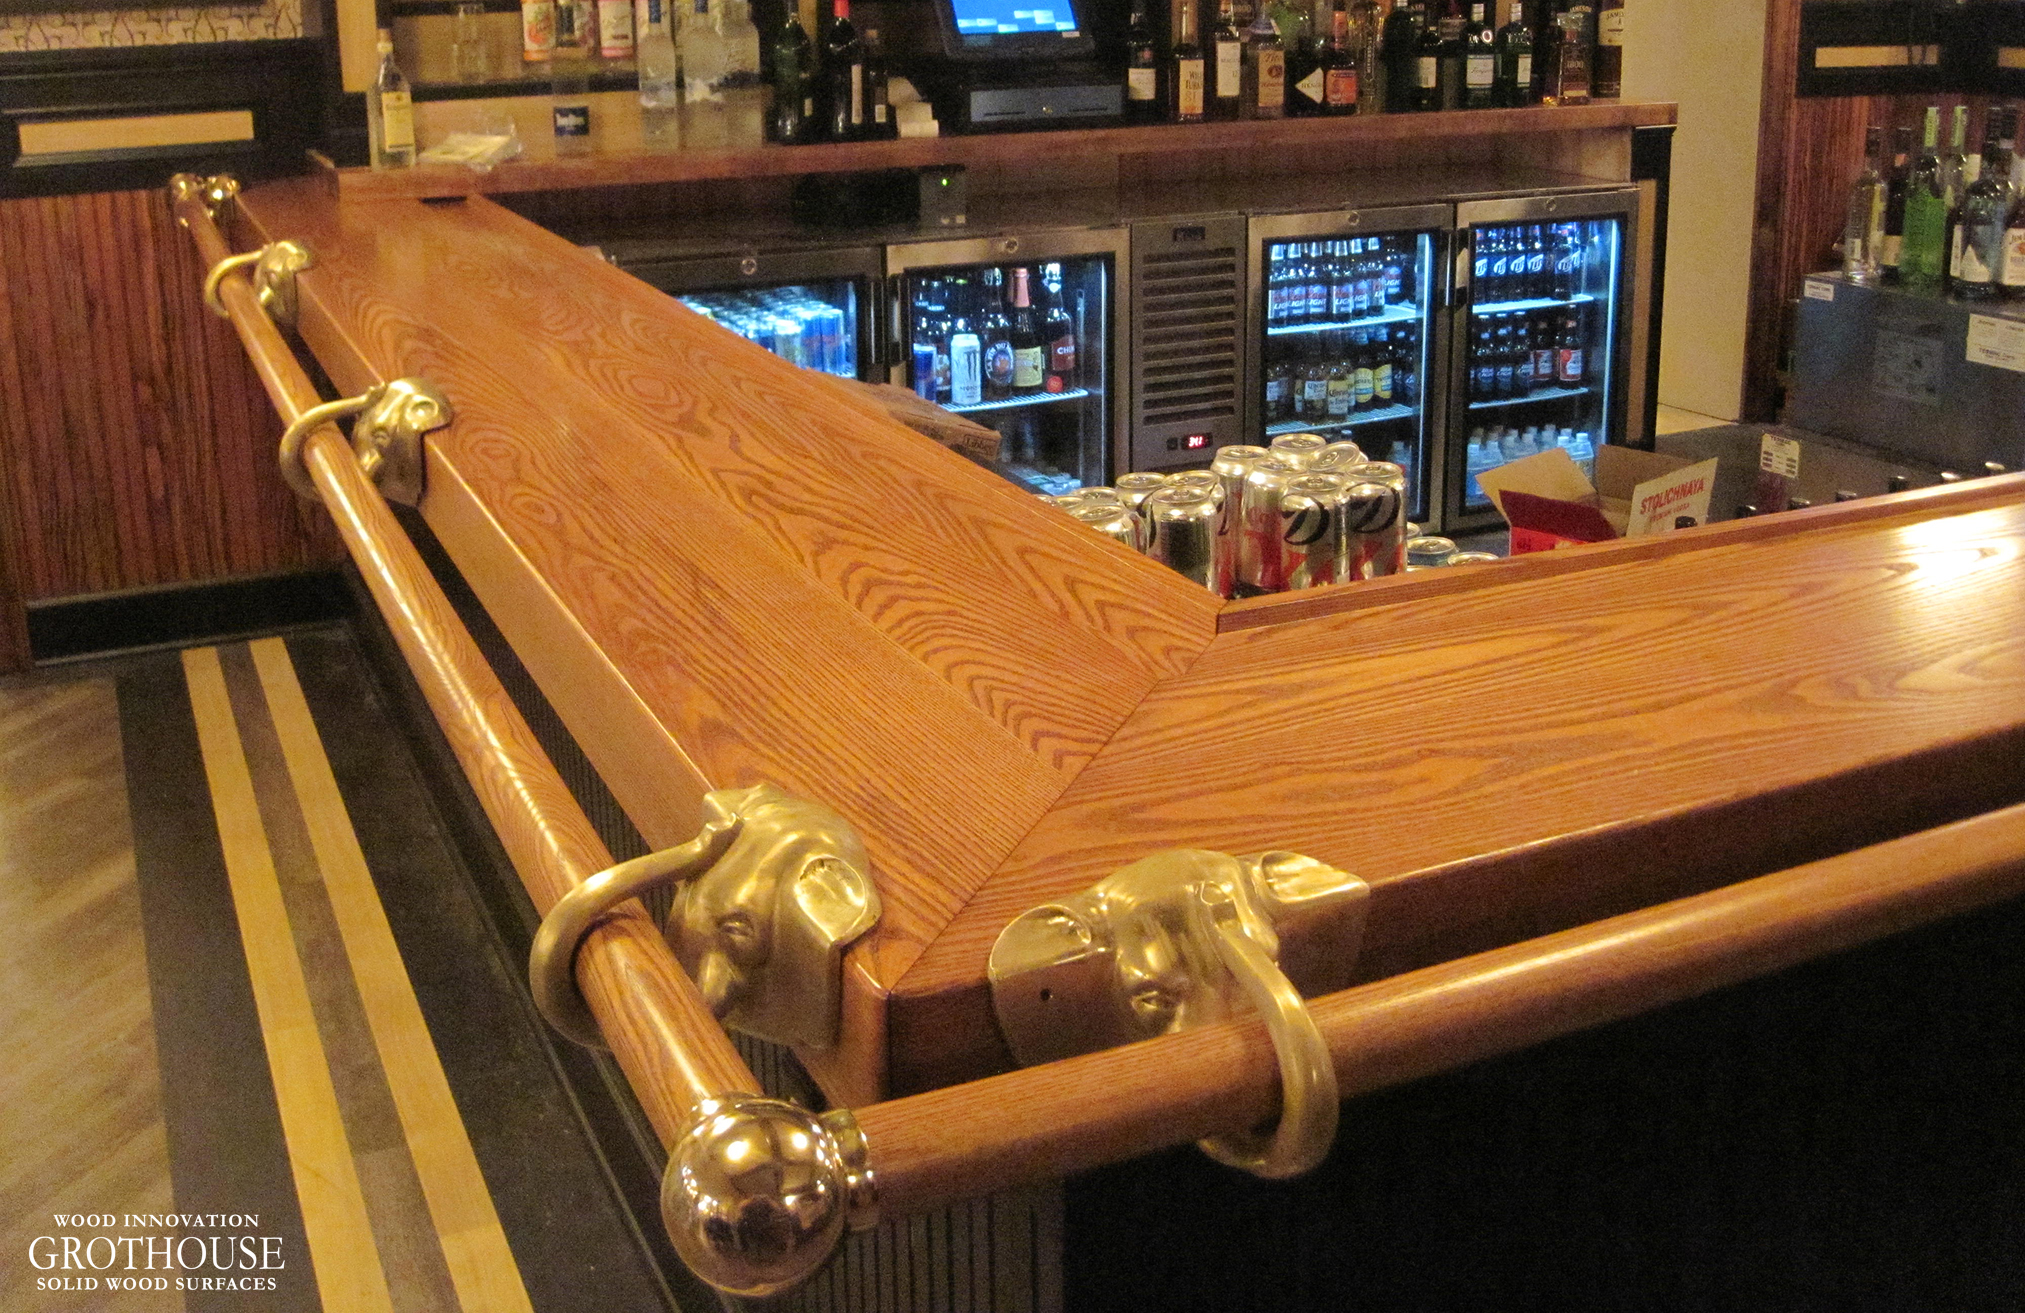 Commercial Wood Surfaces for a Restaurant